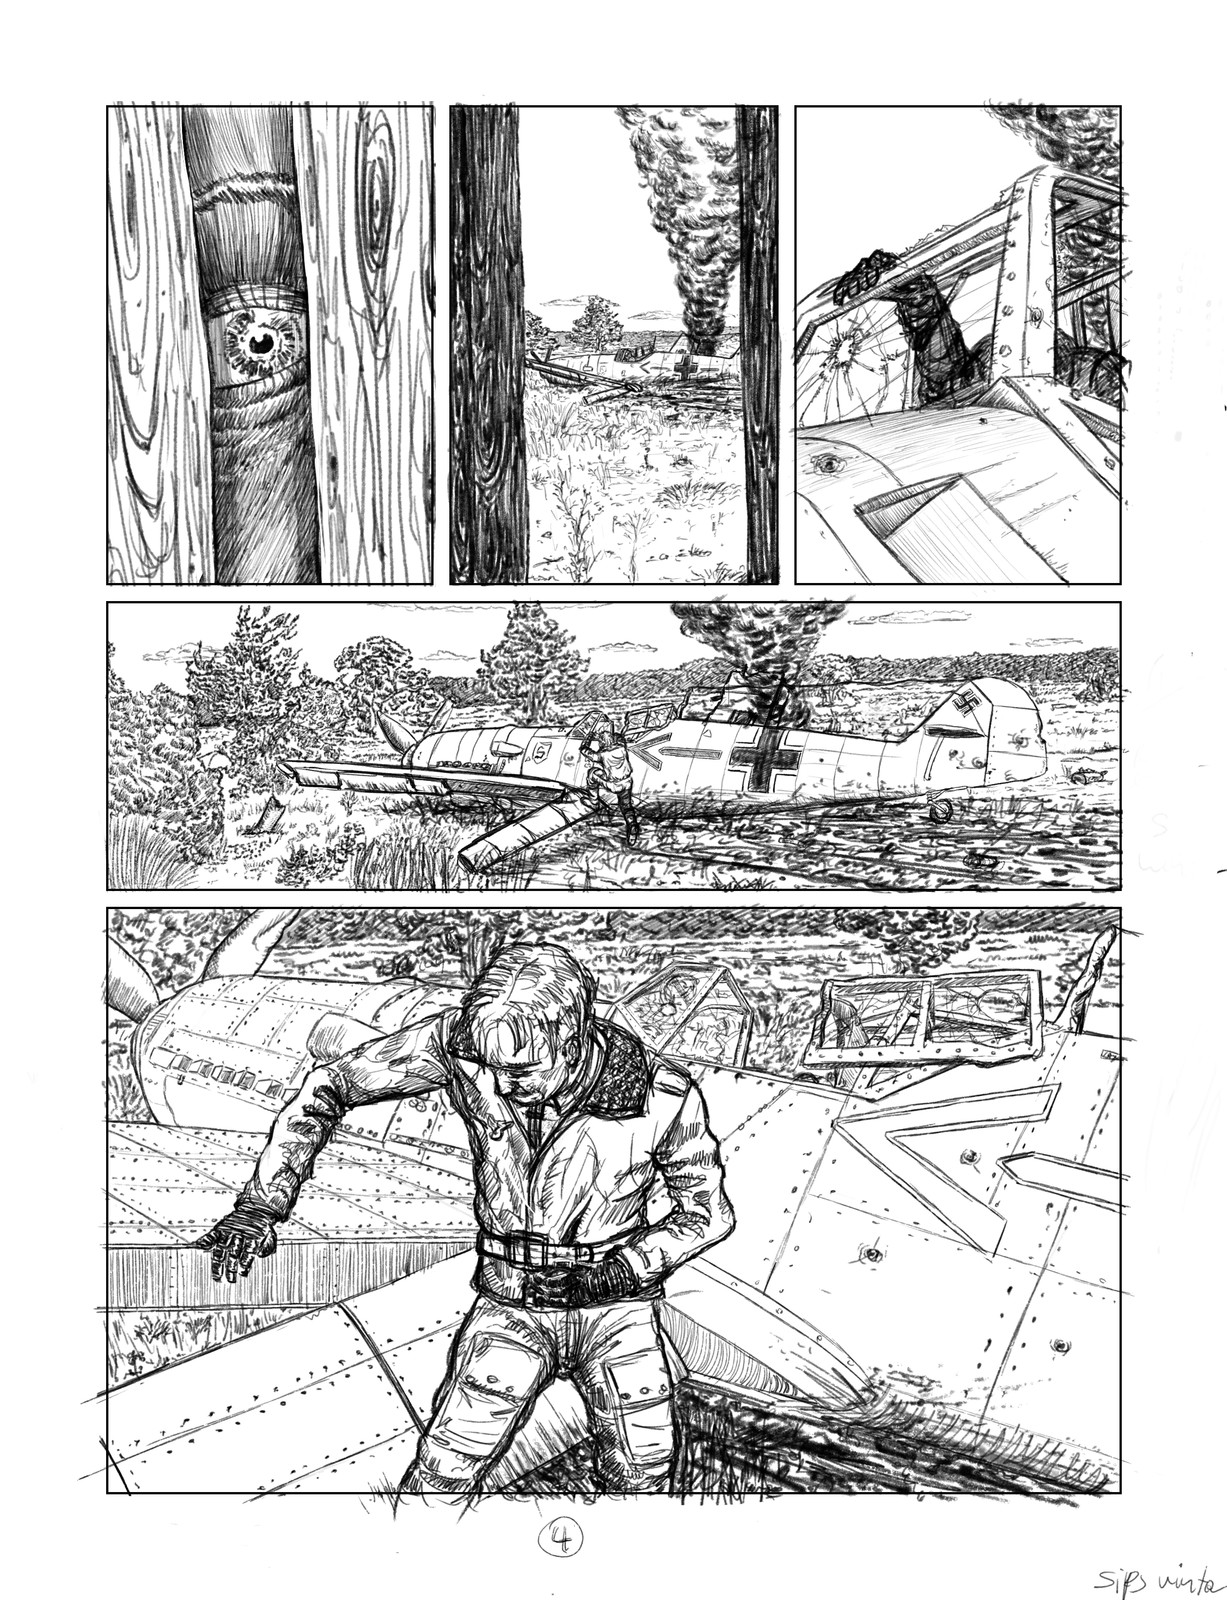 Pencils for page four of a twelve page sequence.